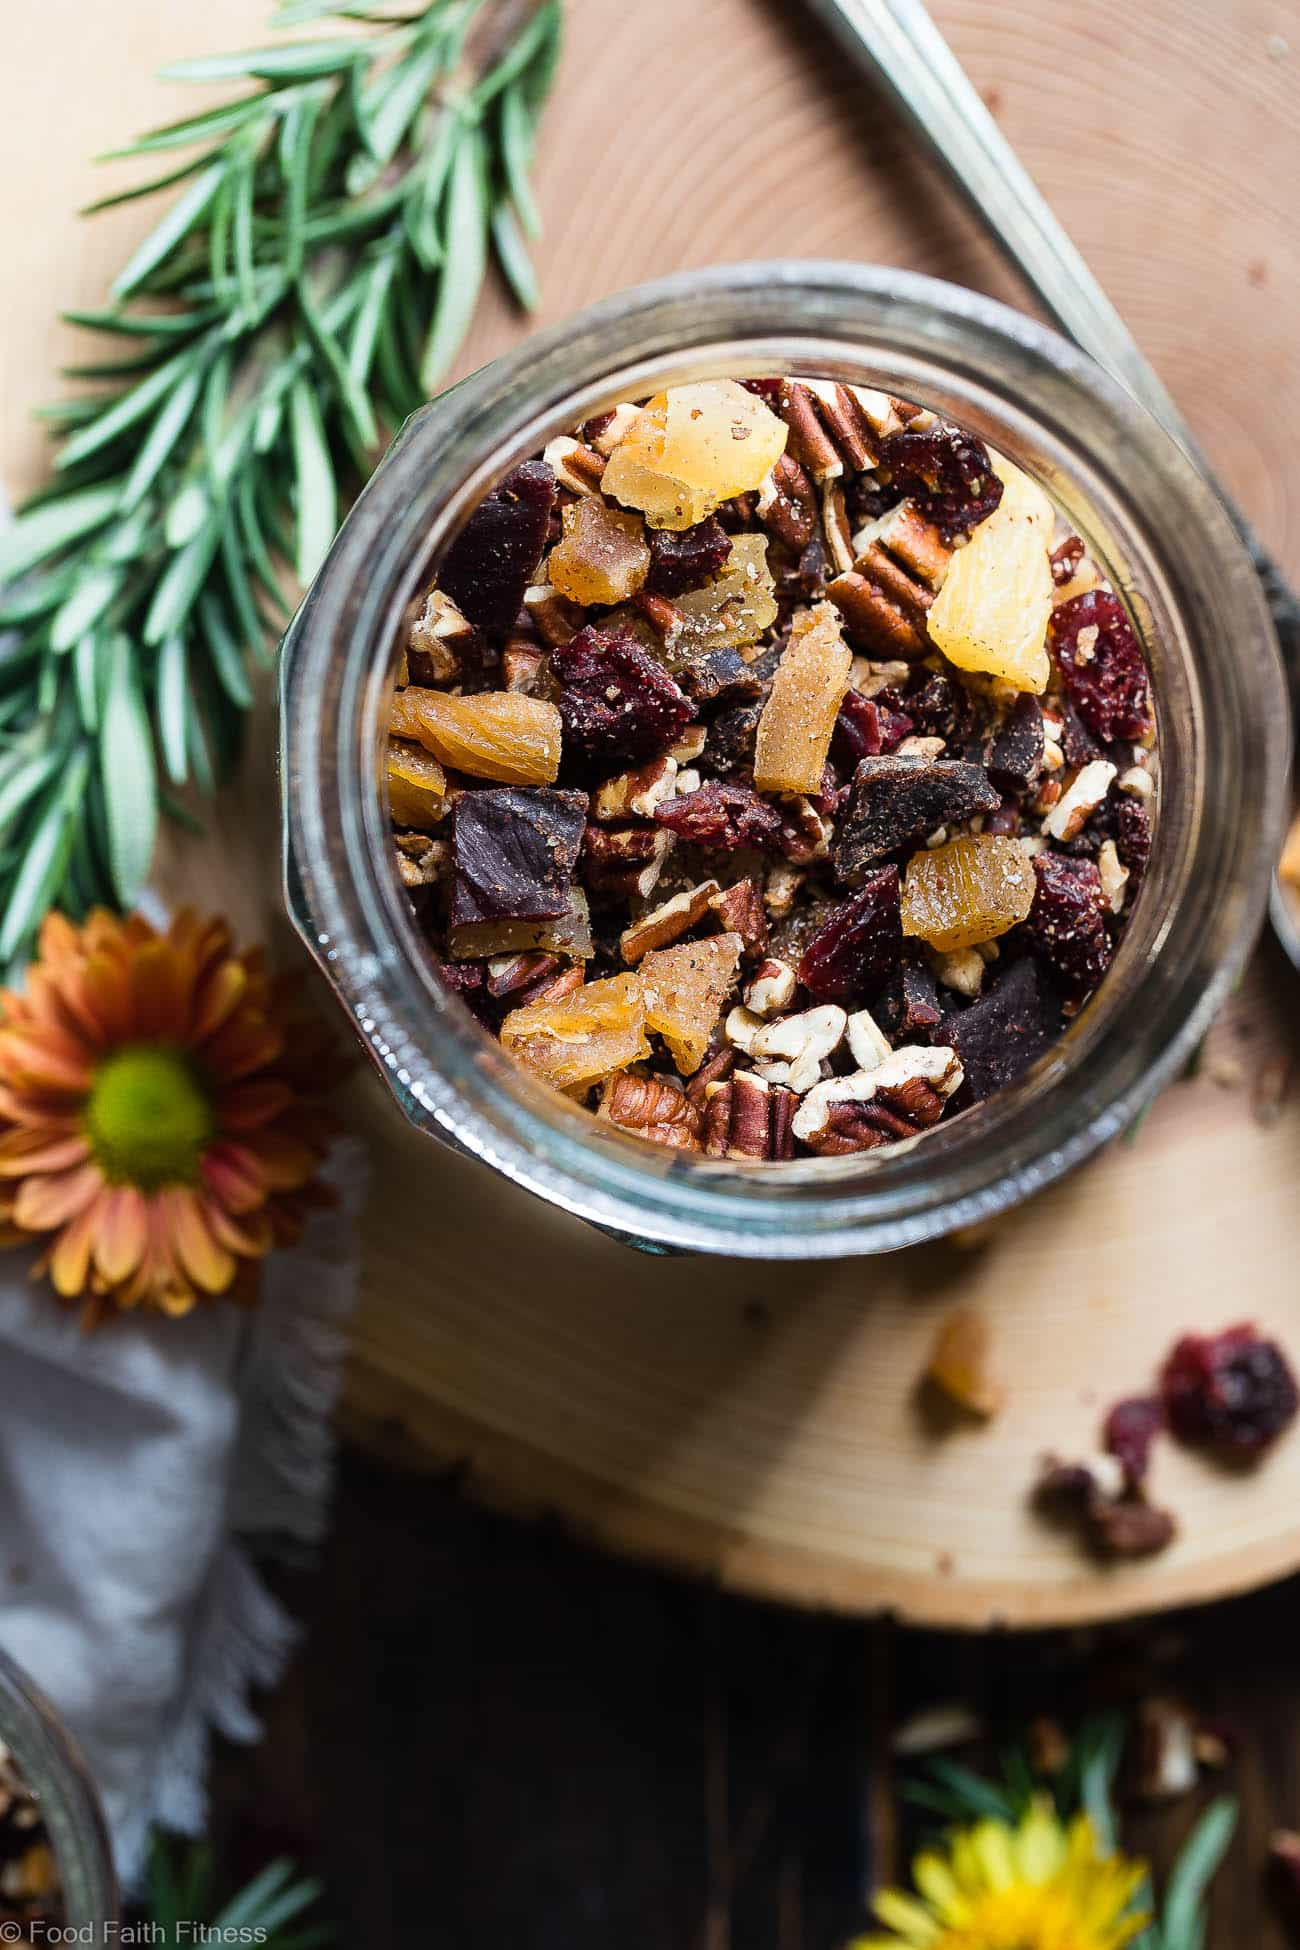 Protein Packed Fall Trail Mix -This quick and easy fall trail mix recipe only uses 6 ingredients and is secretly high in protein! It's a healthy gluten, grain and dairy free portable snack for busy days that is adult and kid friendly!   Foodfaithfitness.com   @FoodFaithFit